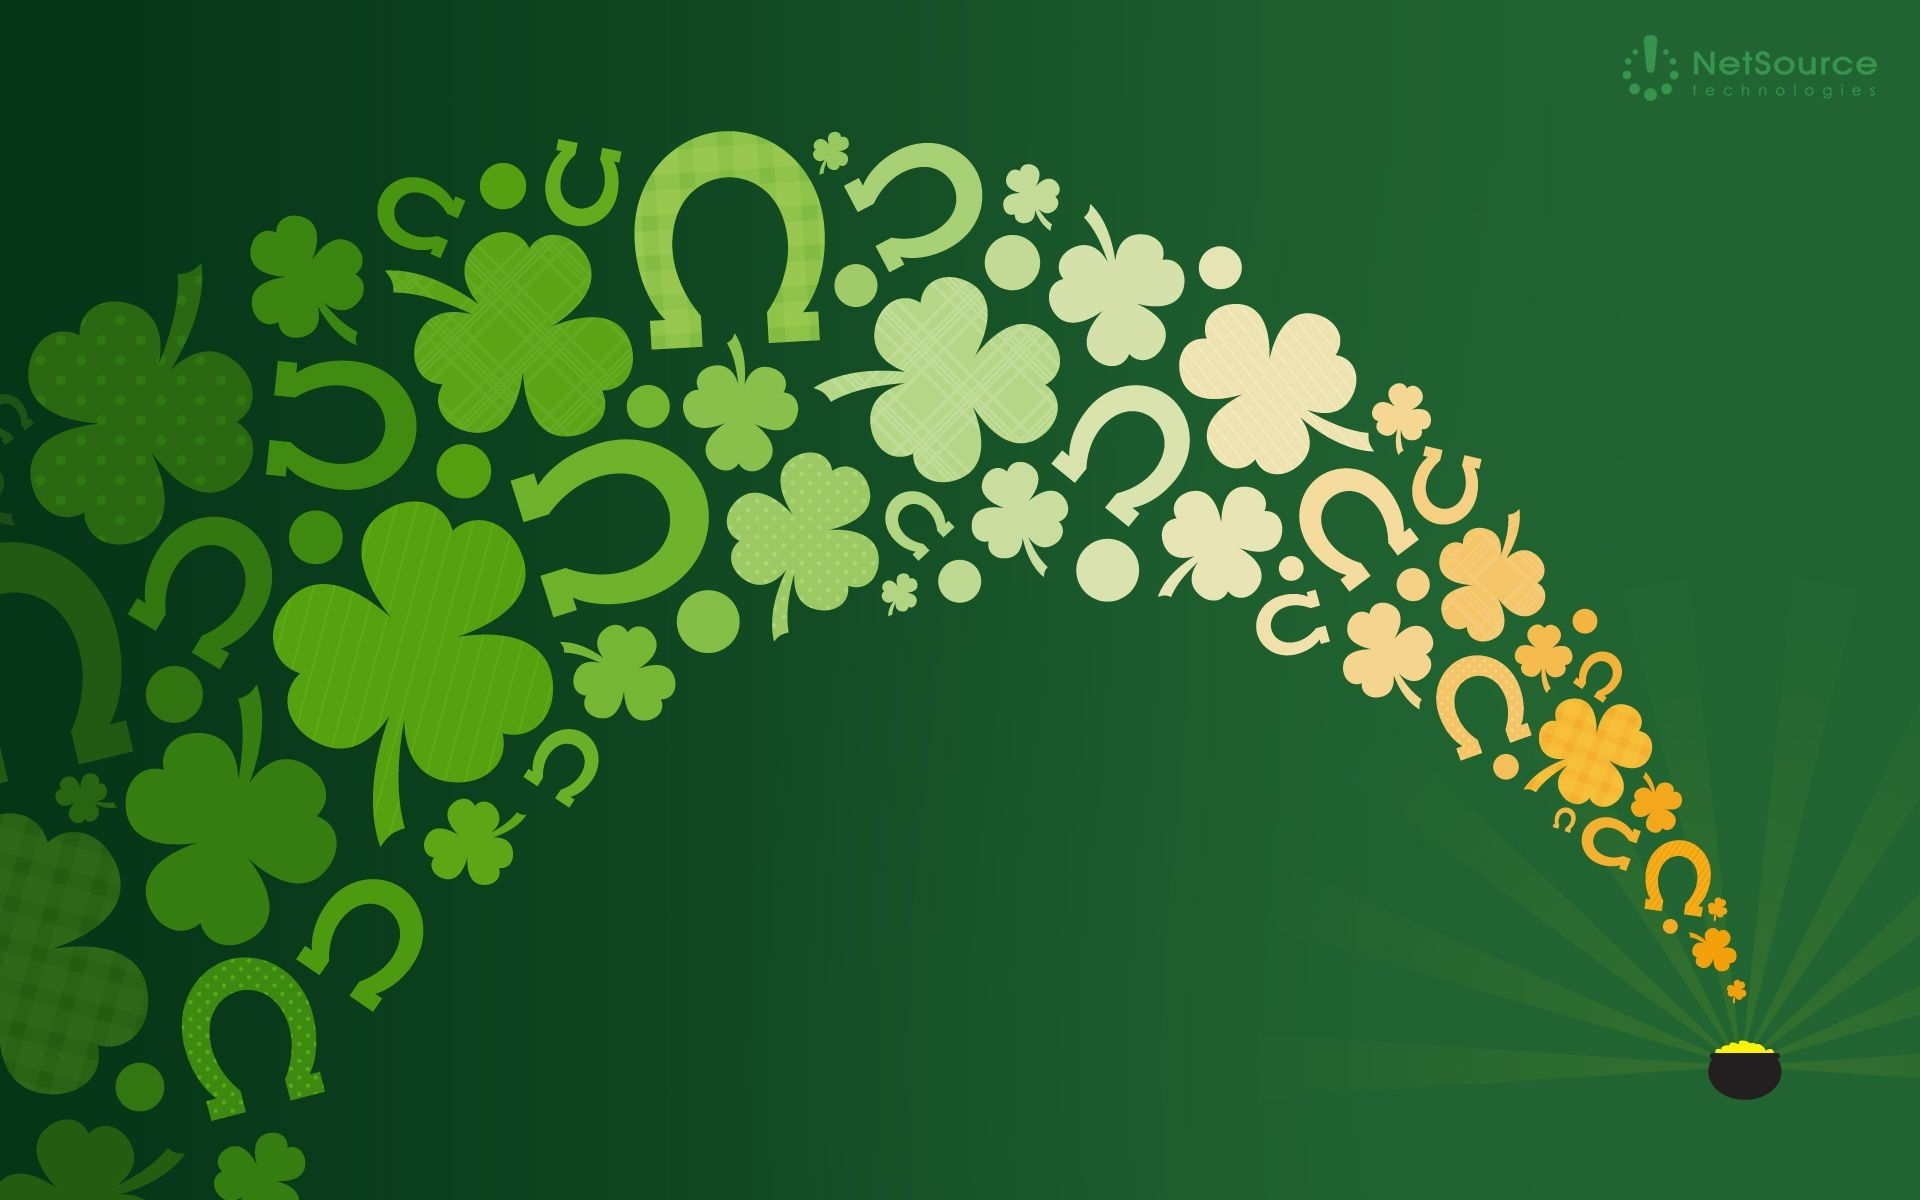 st patrick day pictures wallpapers group (77)